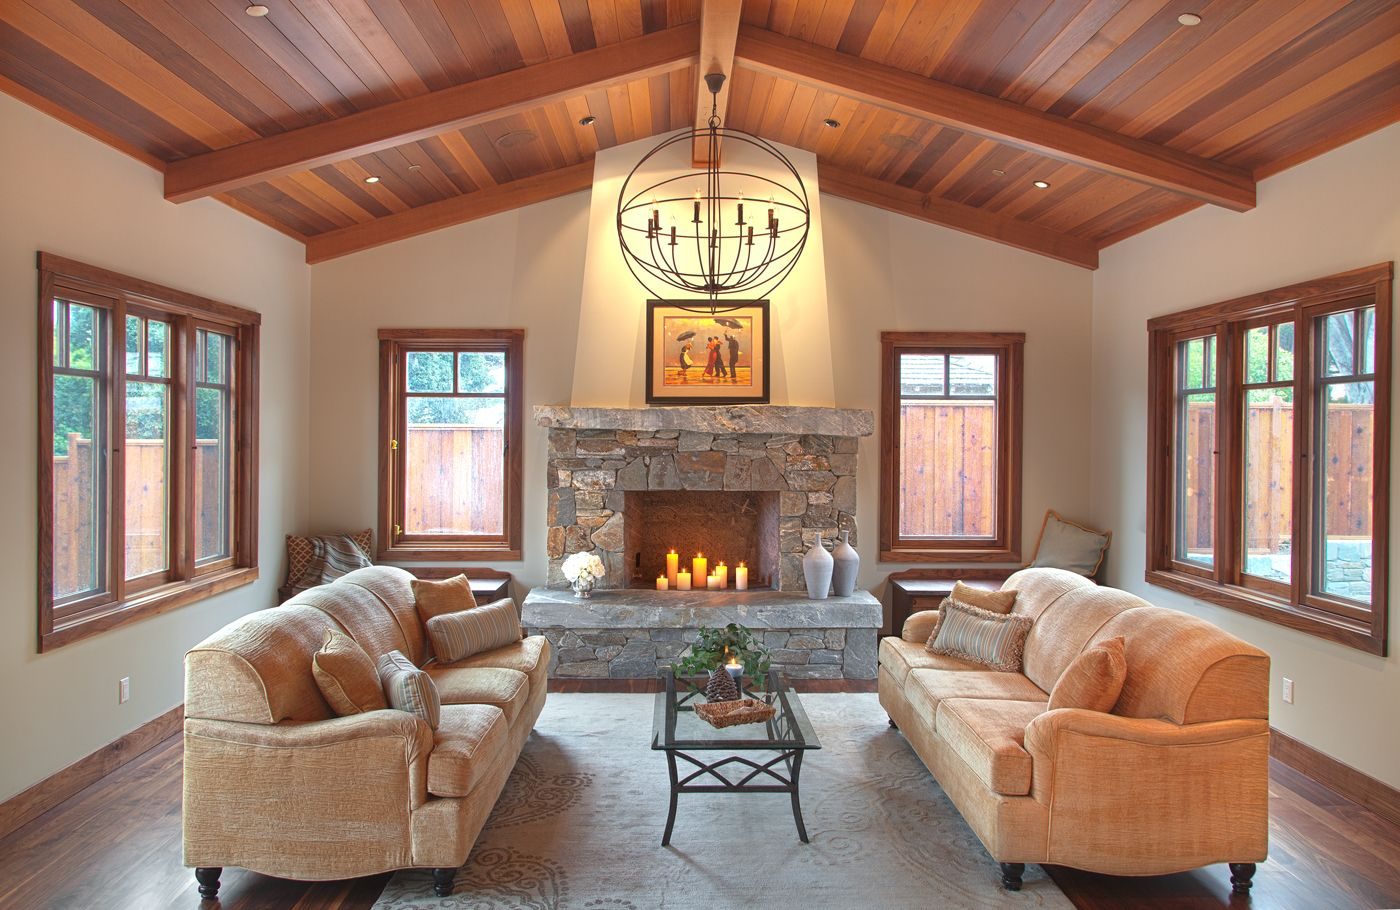 Isabella Great Room: Western Red Cedar Tongue & Groove